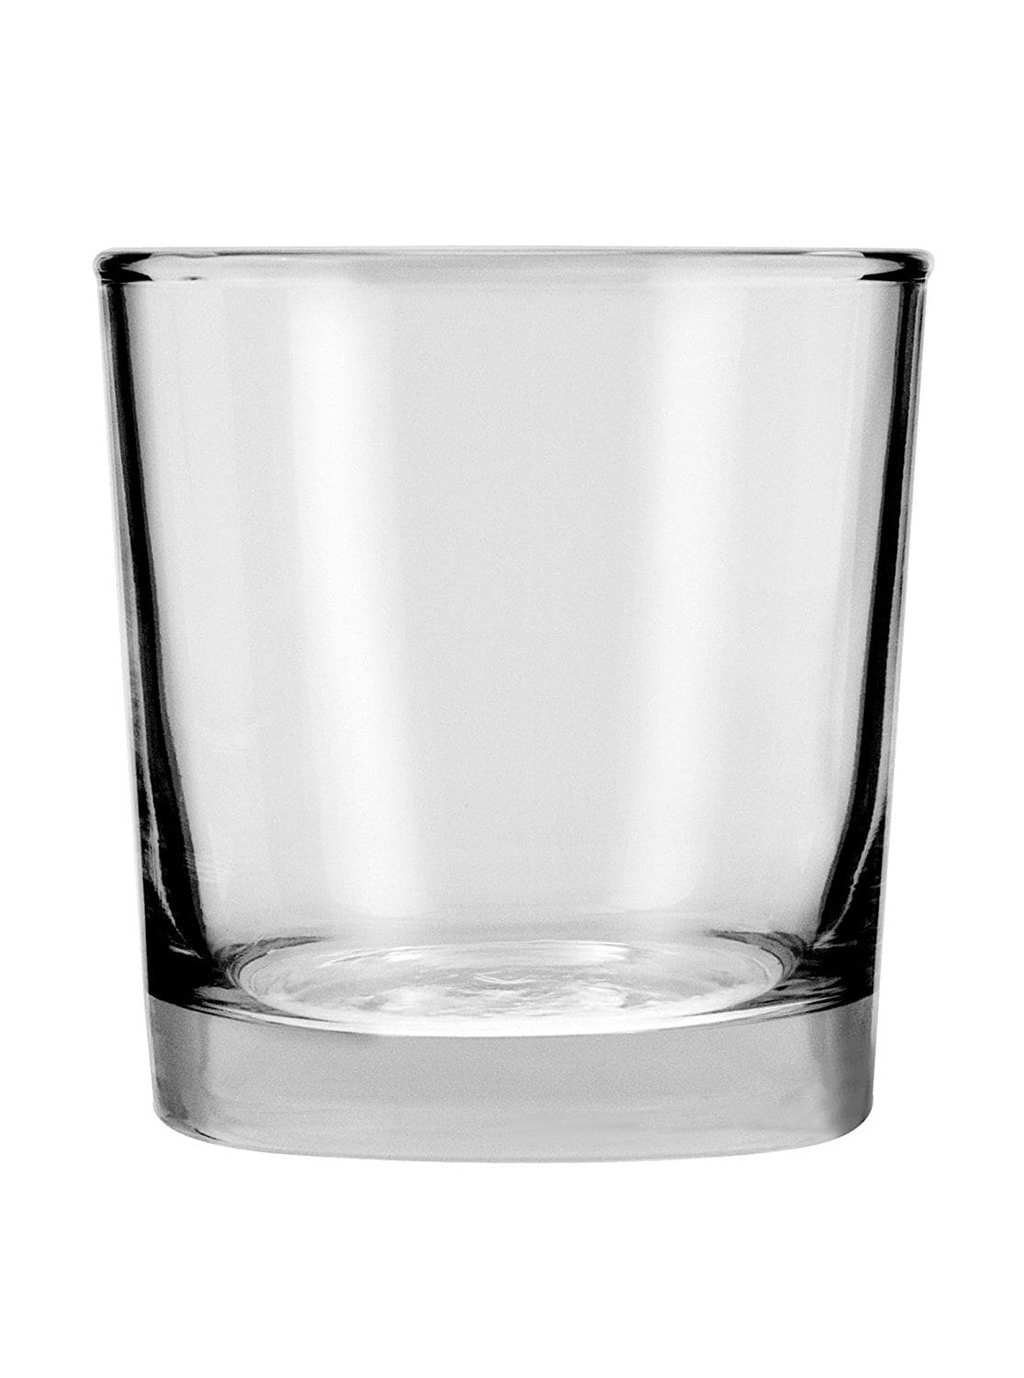 small glass on white